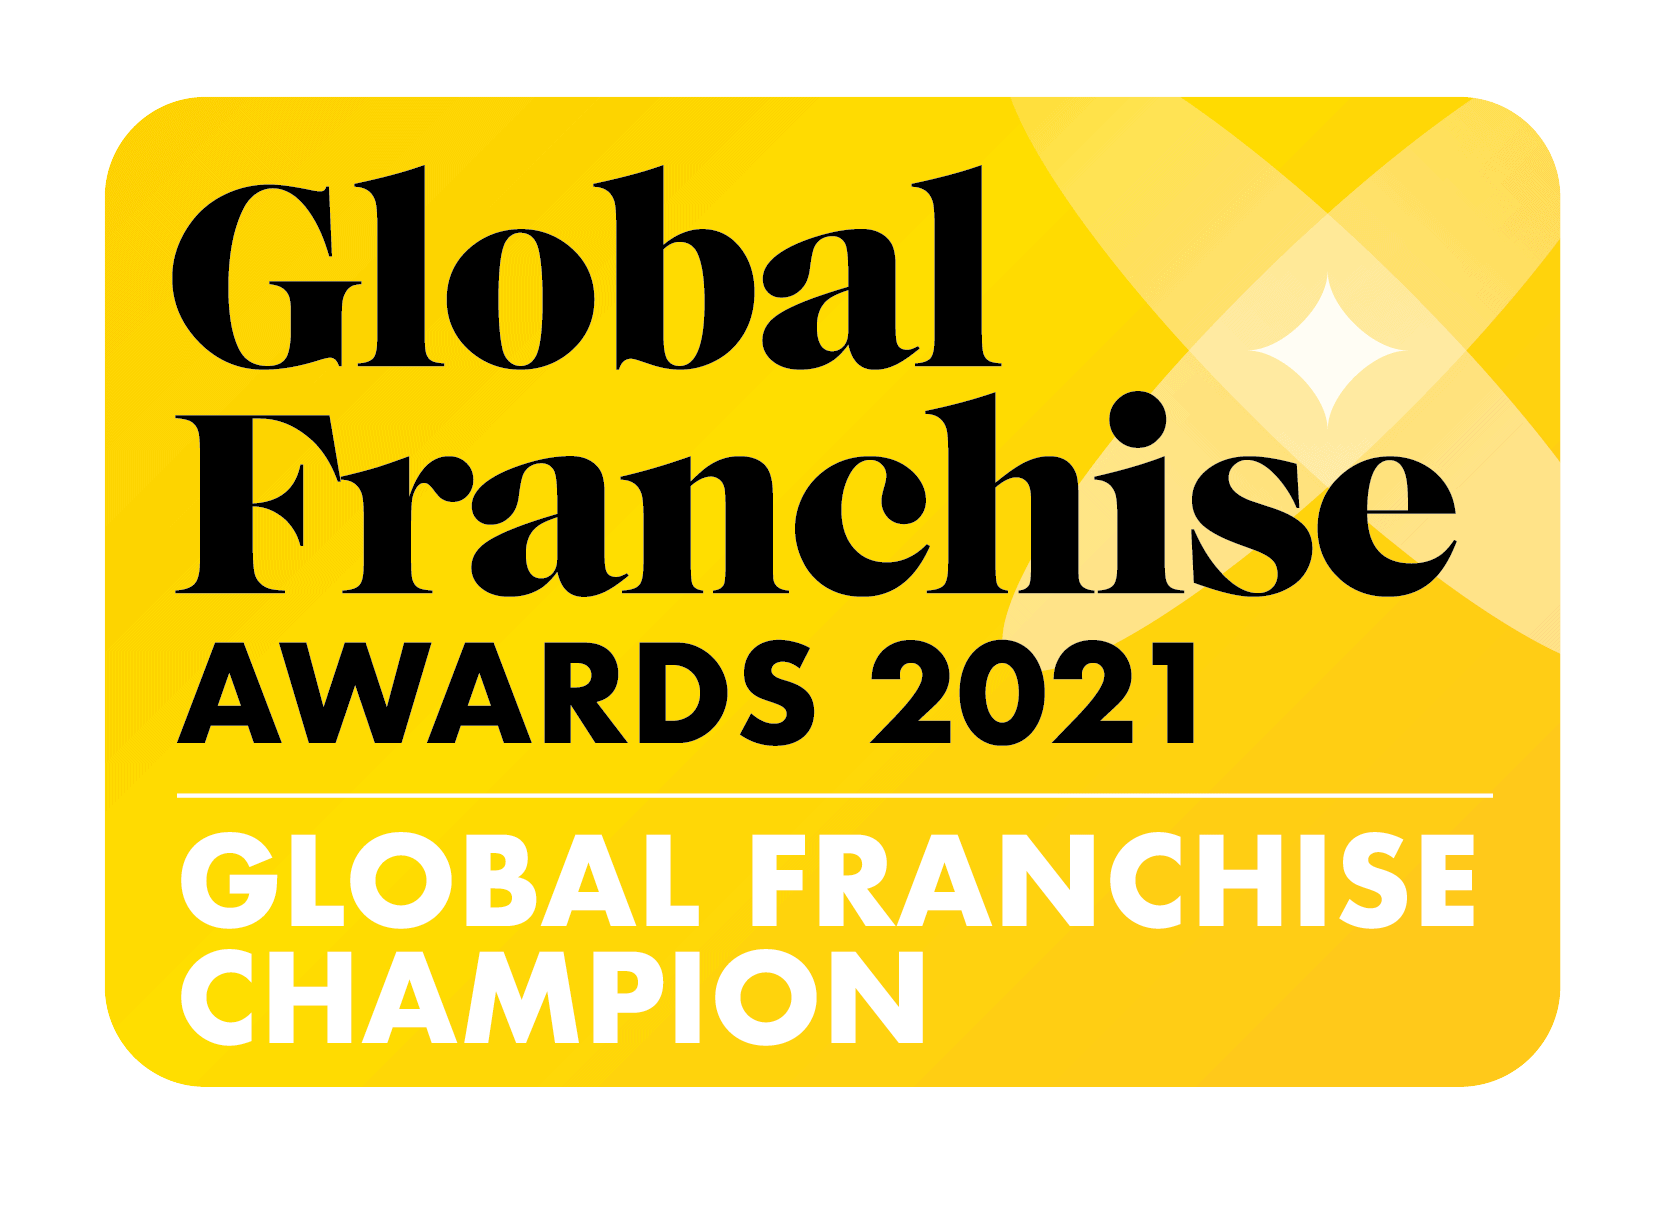 Global Franchise Champions